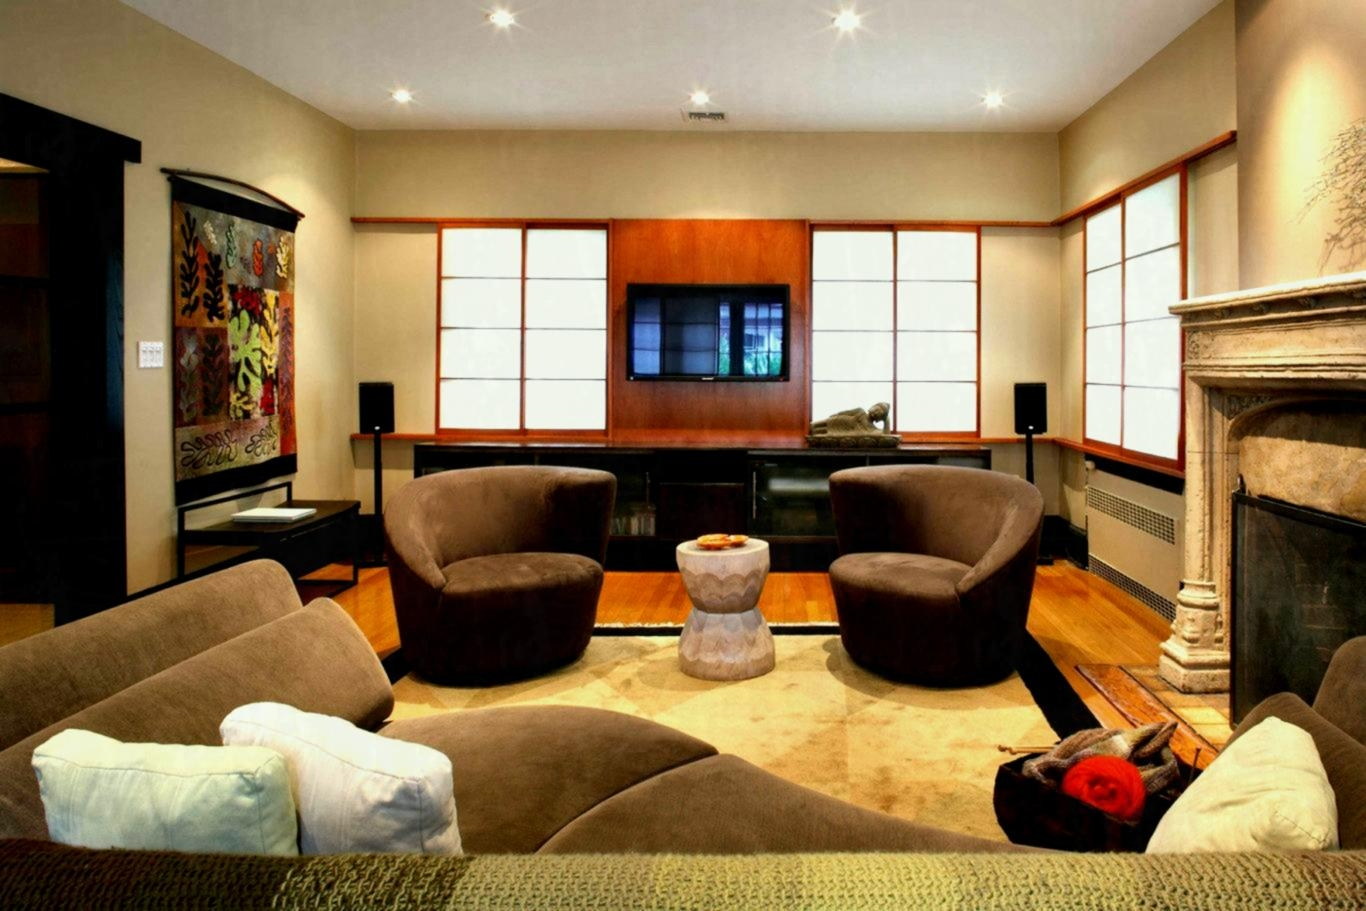 Large Images Of Living Room Theater Happy Hour Home Ideas Chairs